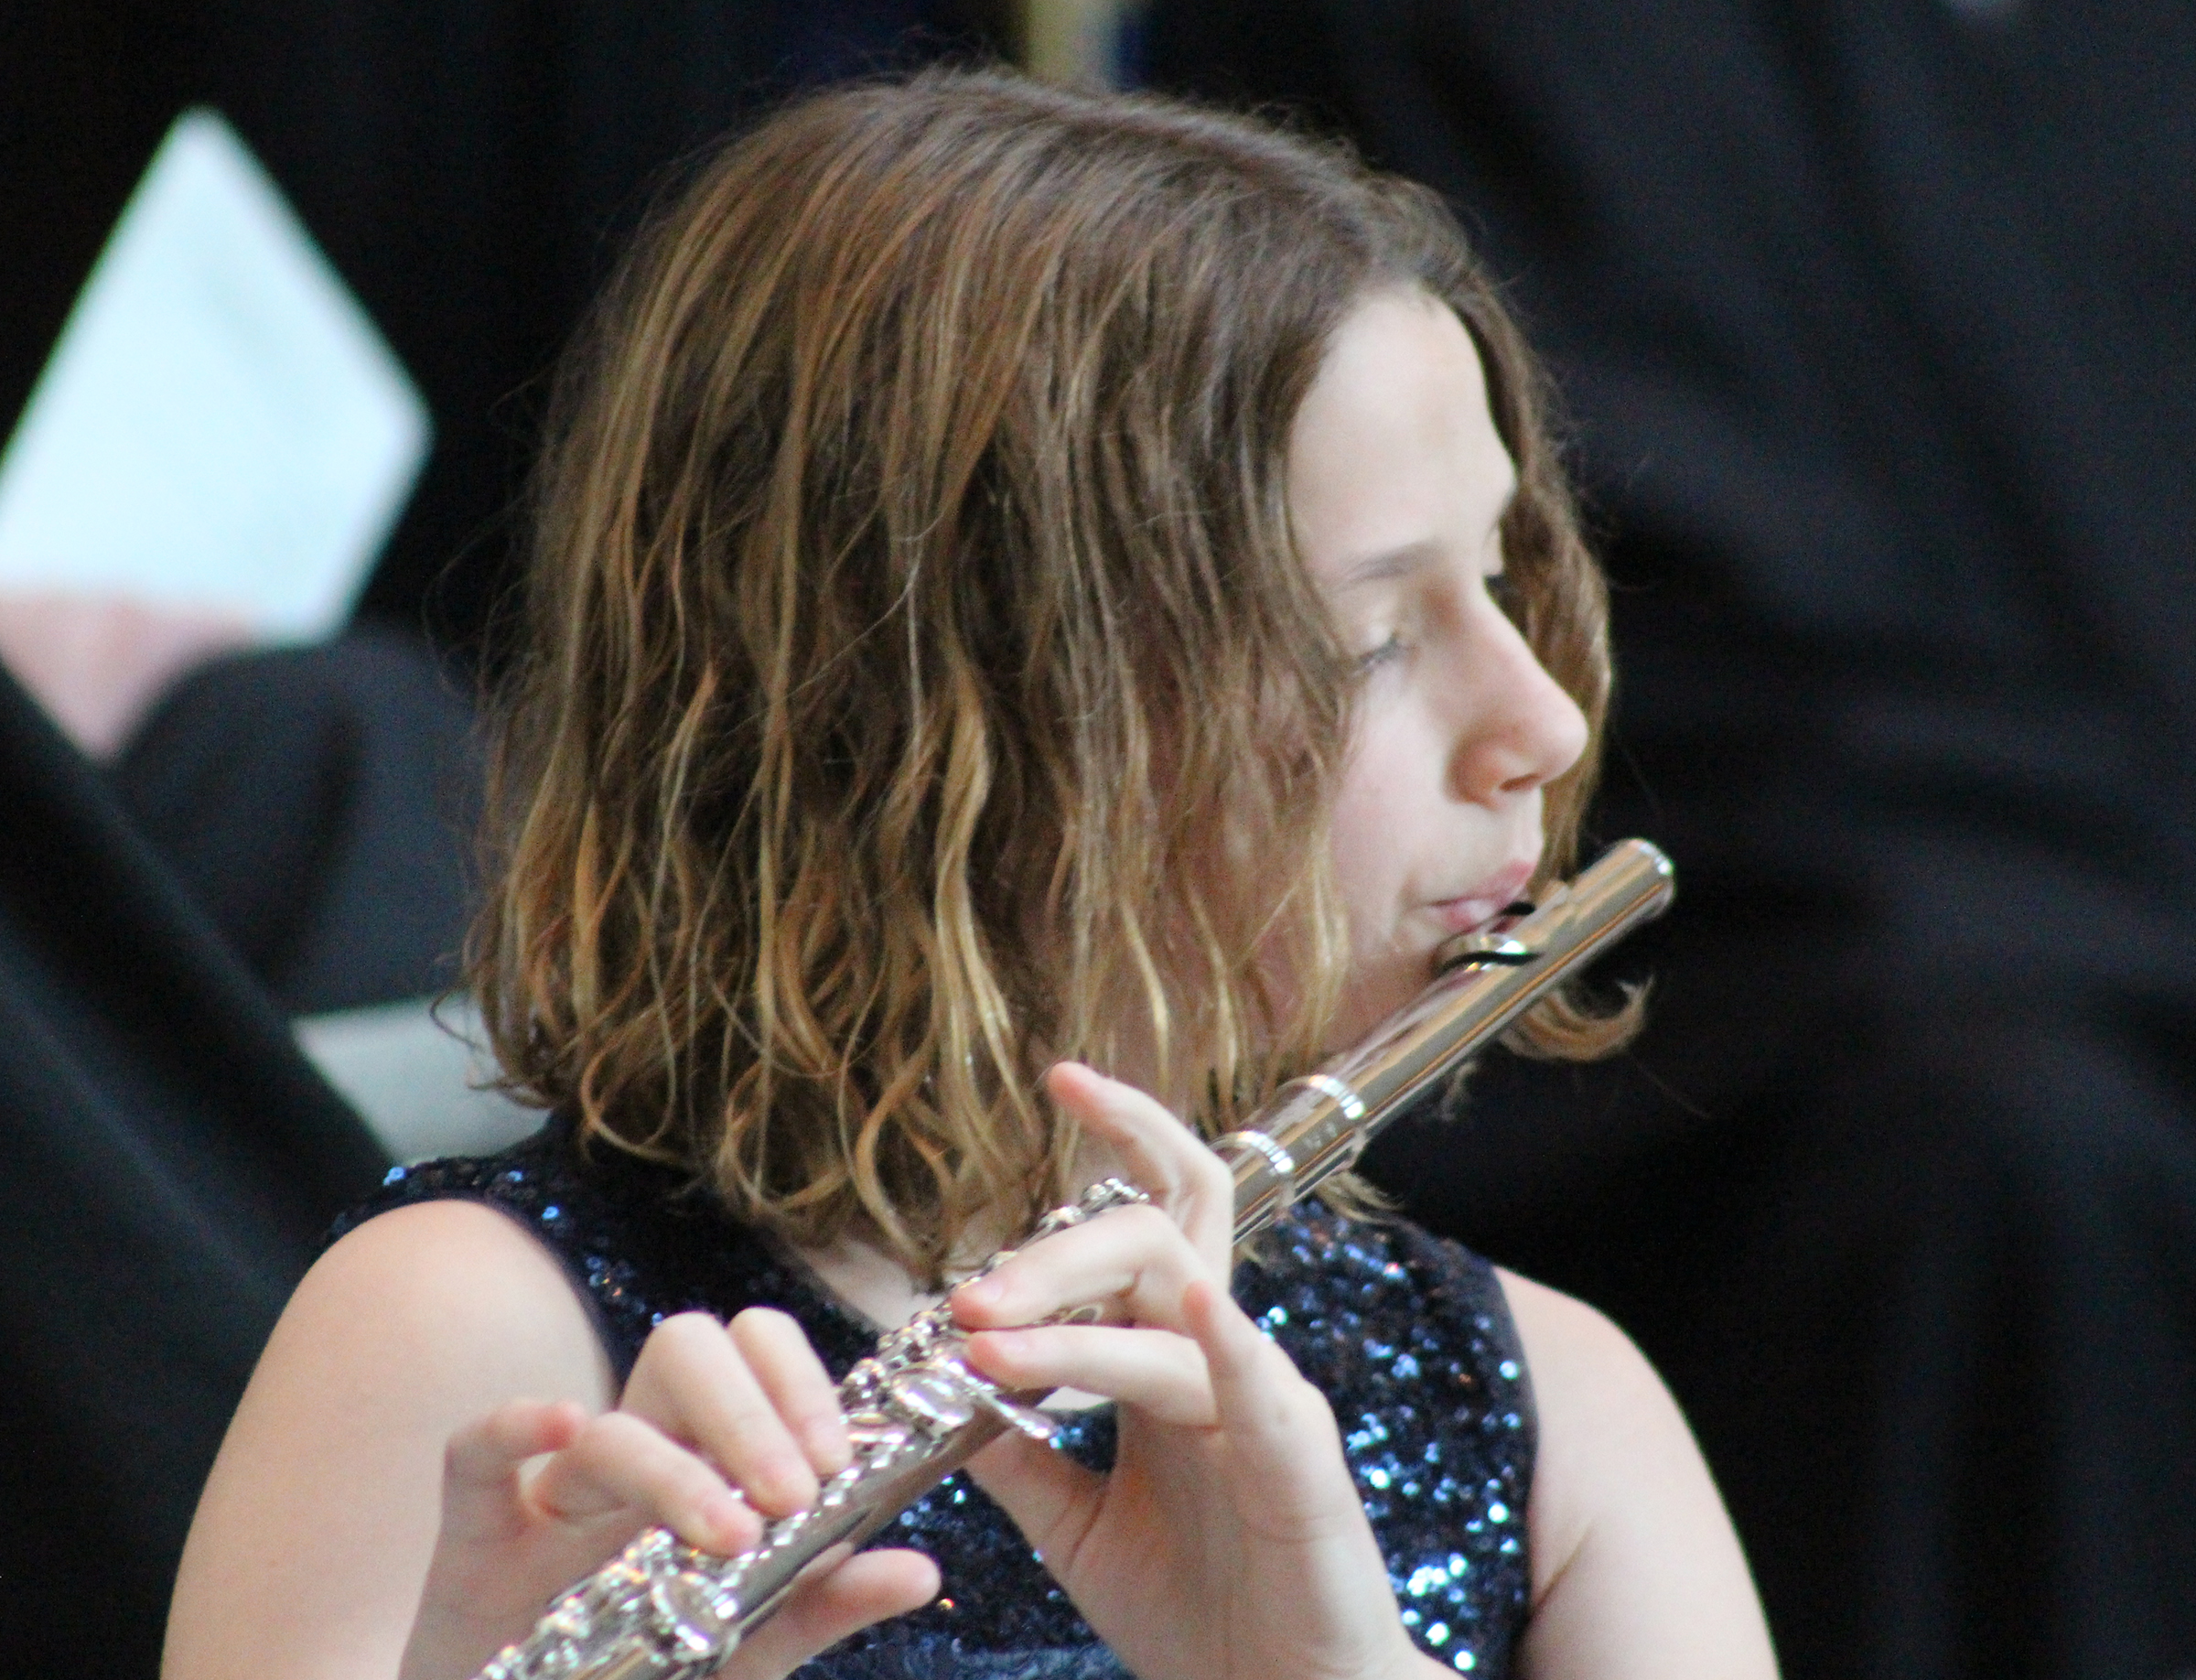 Elizabeth Buescher plays the flute at her father's investiture ceremony at the Hruska Federal Courthouse on Friday, Nov. 15, 2019. (Photo by Scott Stewart)